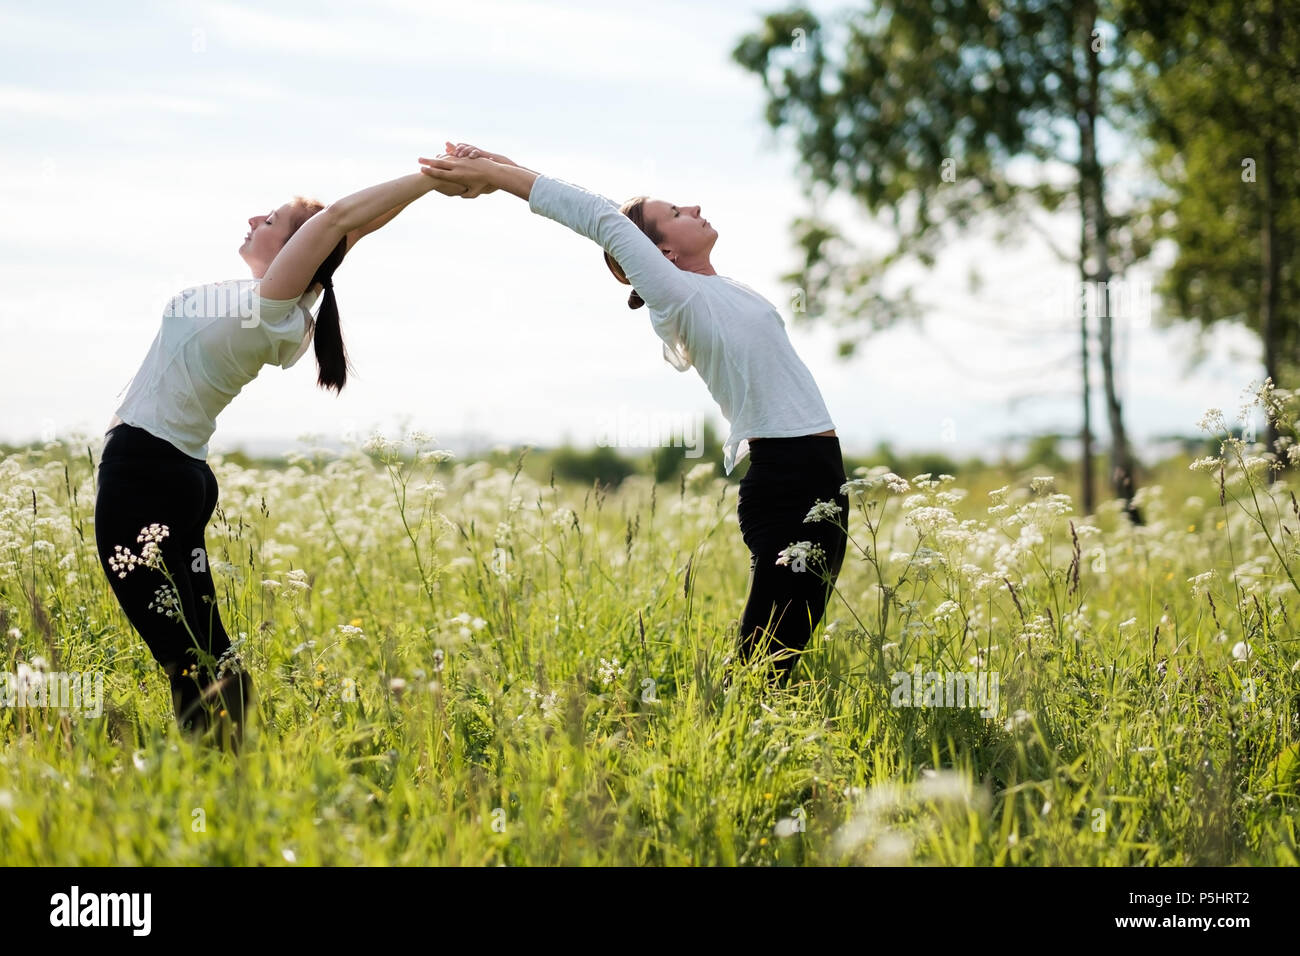 Two women le doing yoga exercises, standing bending to each other at outdoors in nature park. - Stock Image